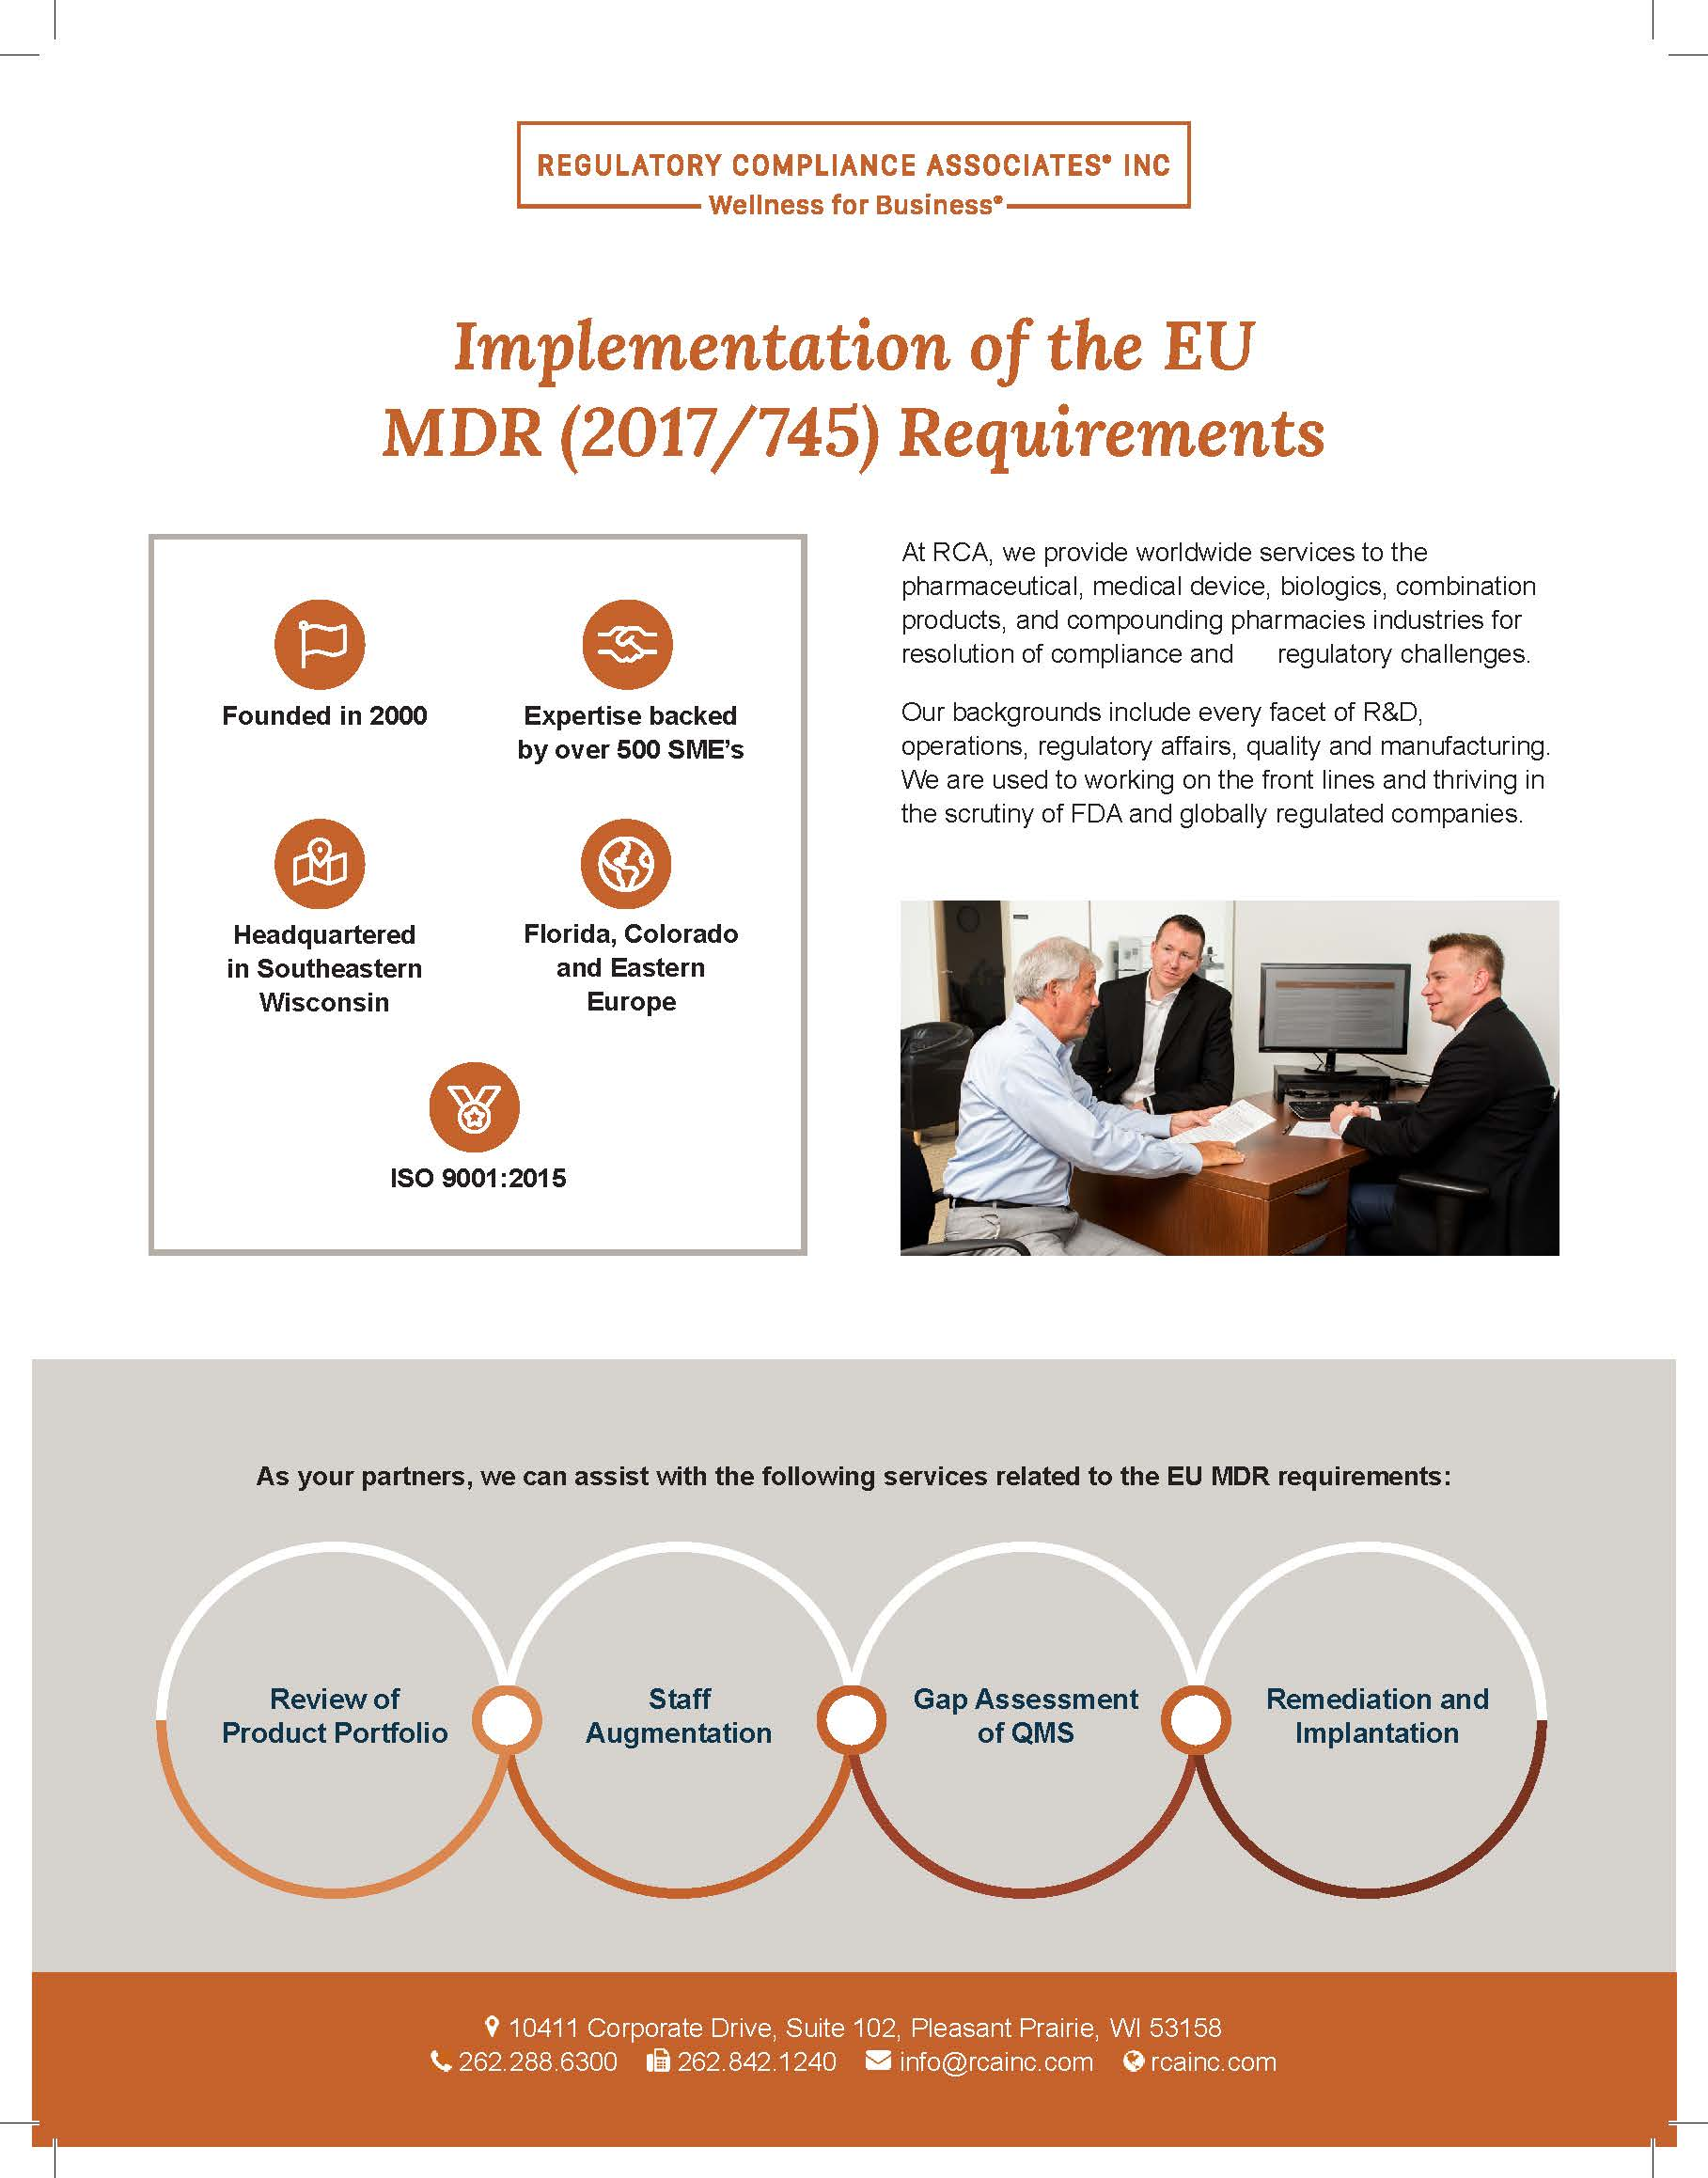 Implementation of the EU MDR (2017/745) Requirements